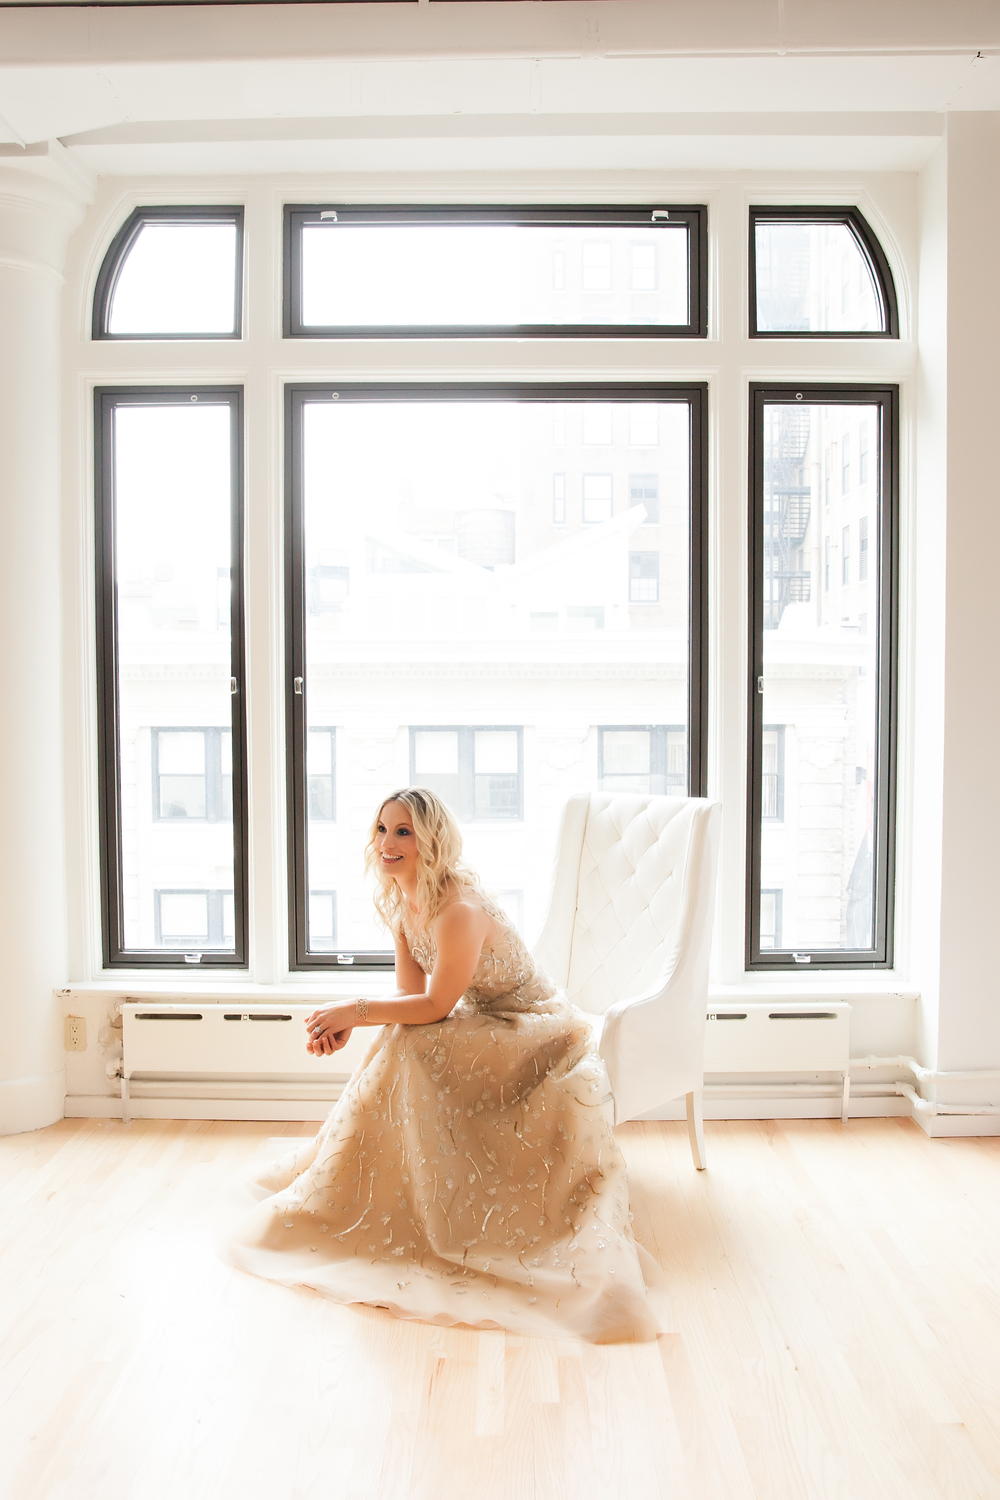 Ceci_Style_Ceci_New_York_Bride_Wedding_Luxury_Sofia-Negron_CeciStyle_5.jpg